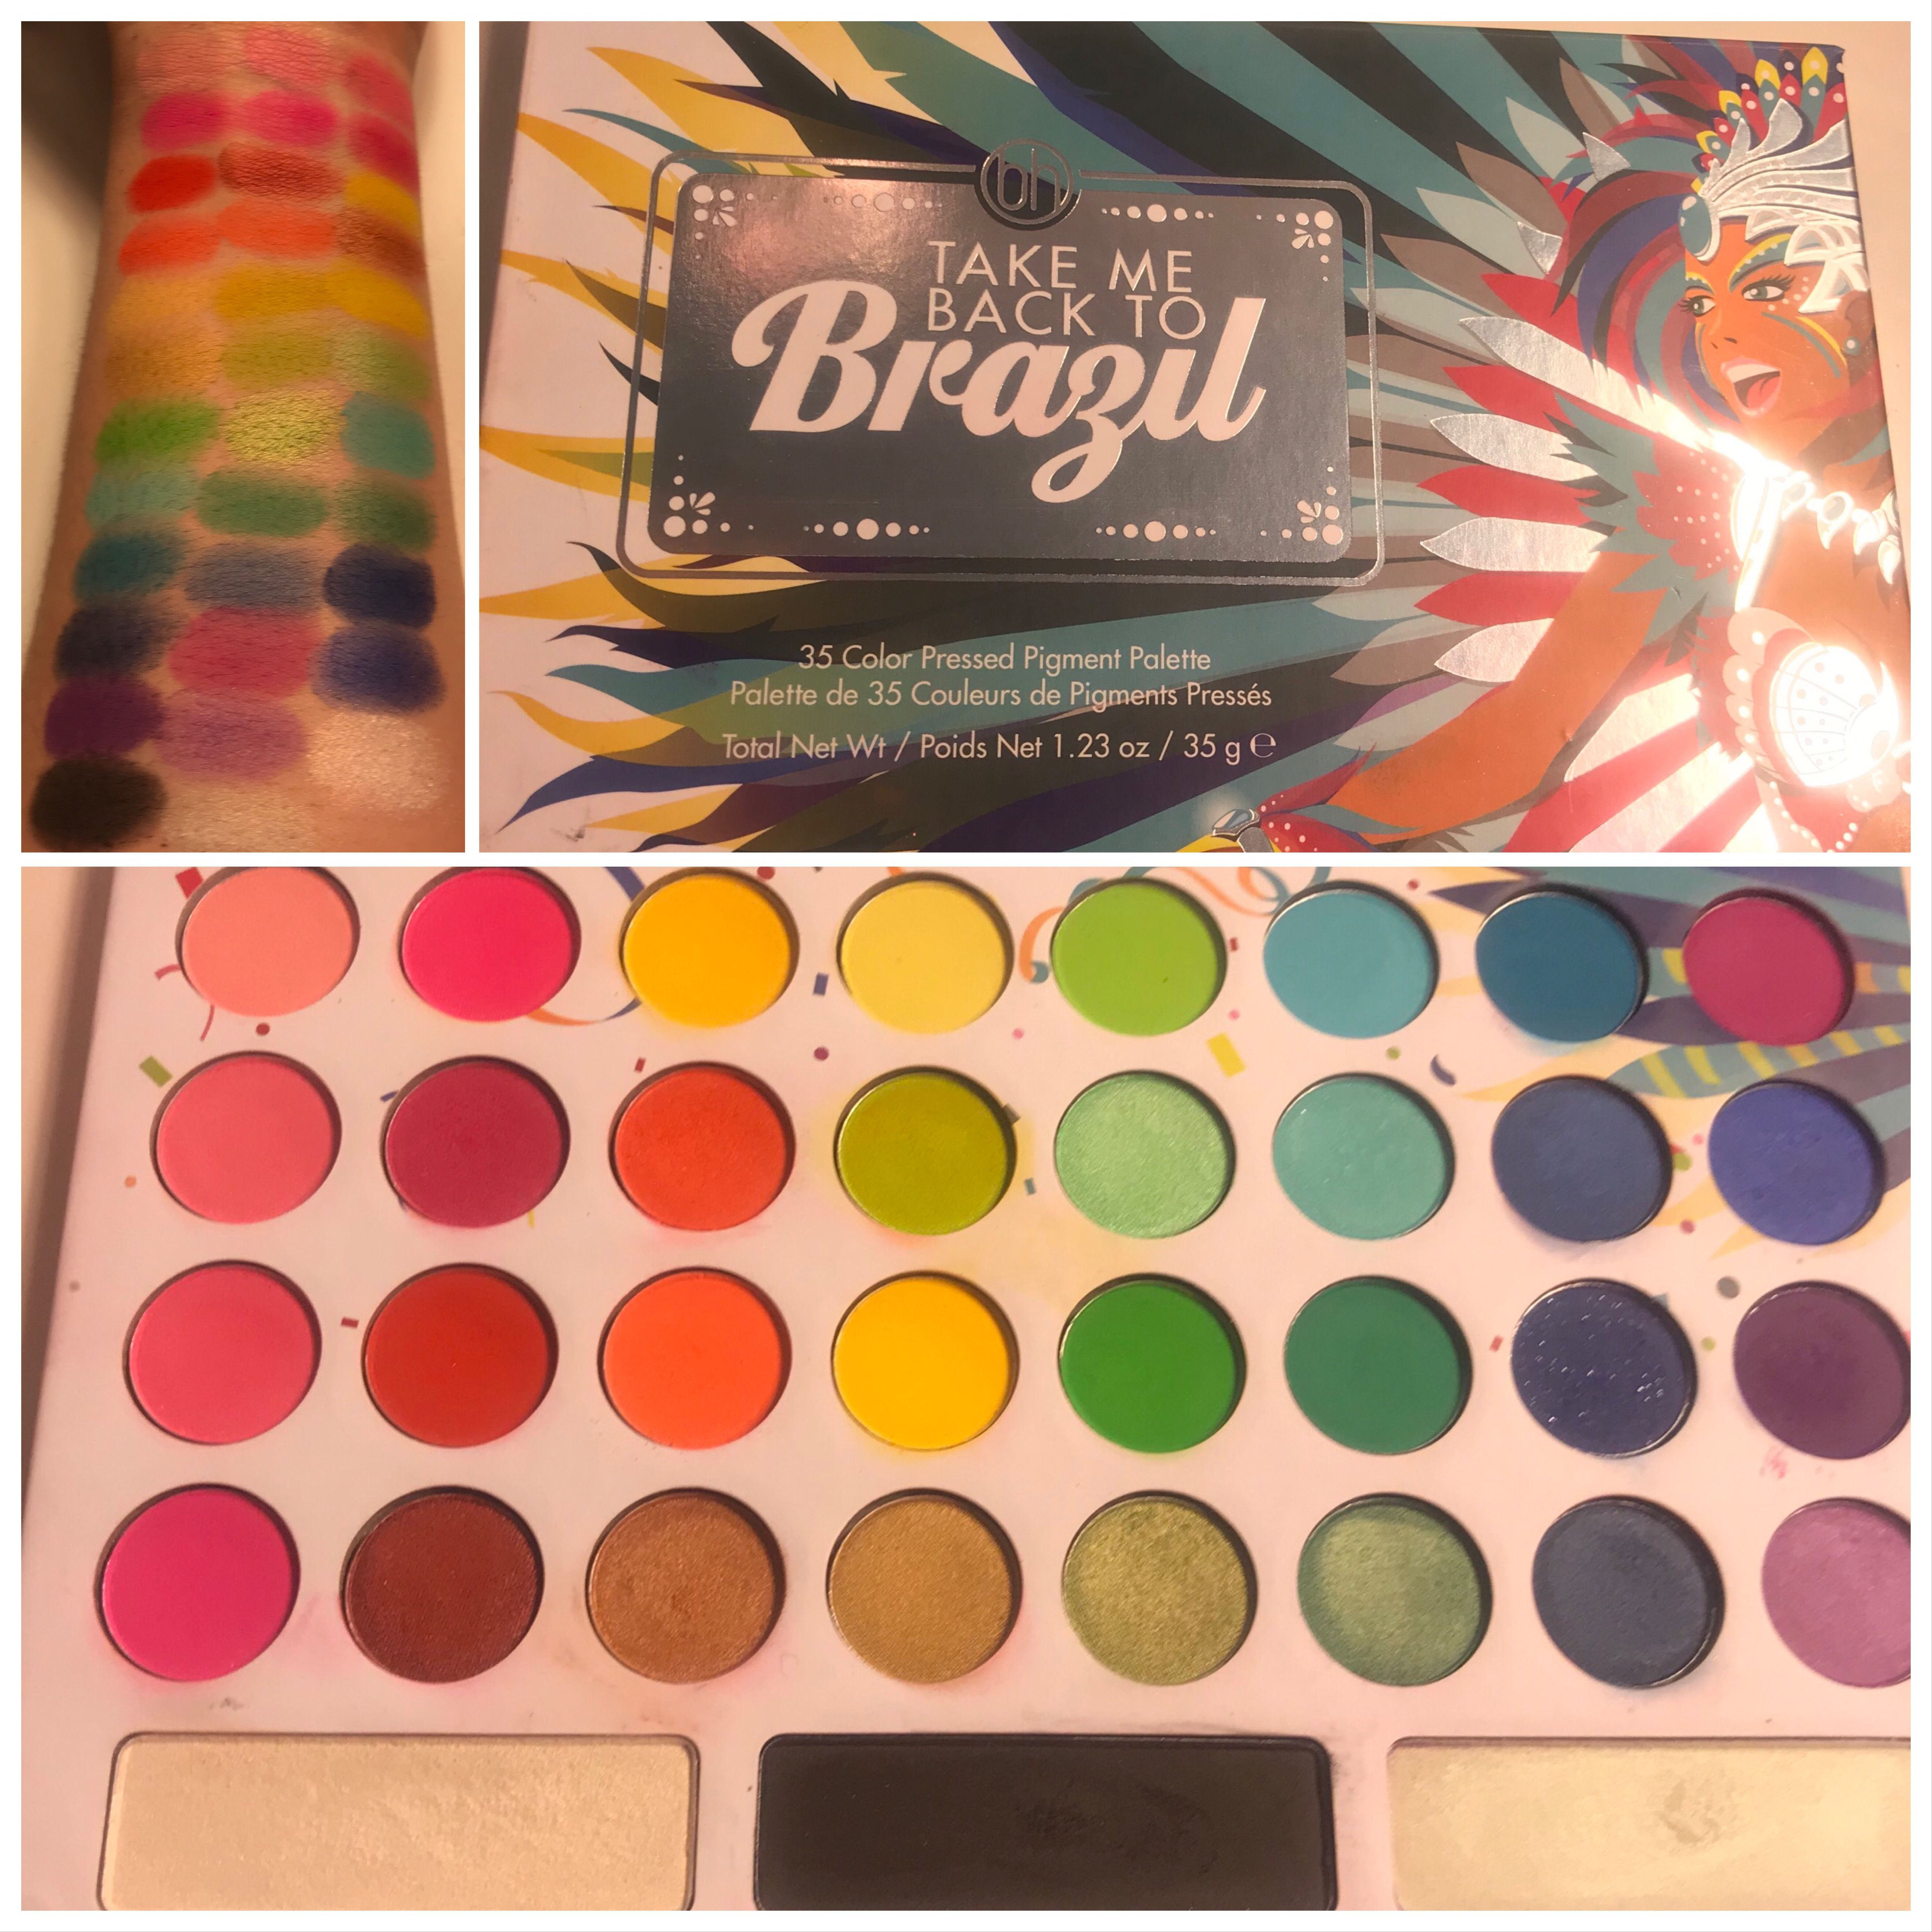 The Bh Cosmetics Take Me Back To Brazil Palette Can Be Found For 17